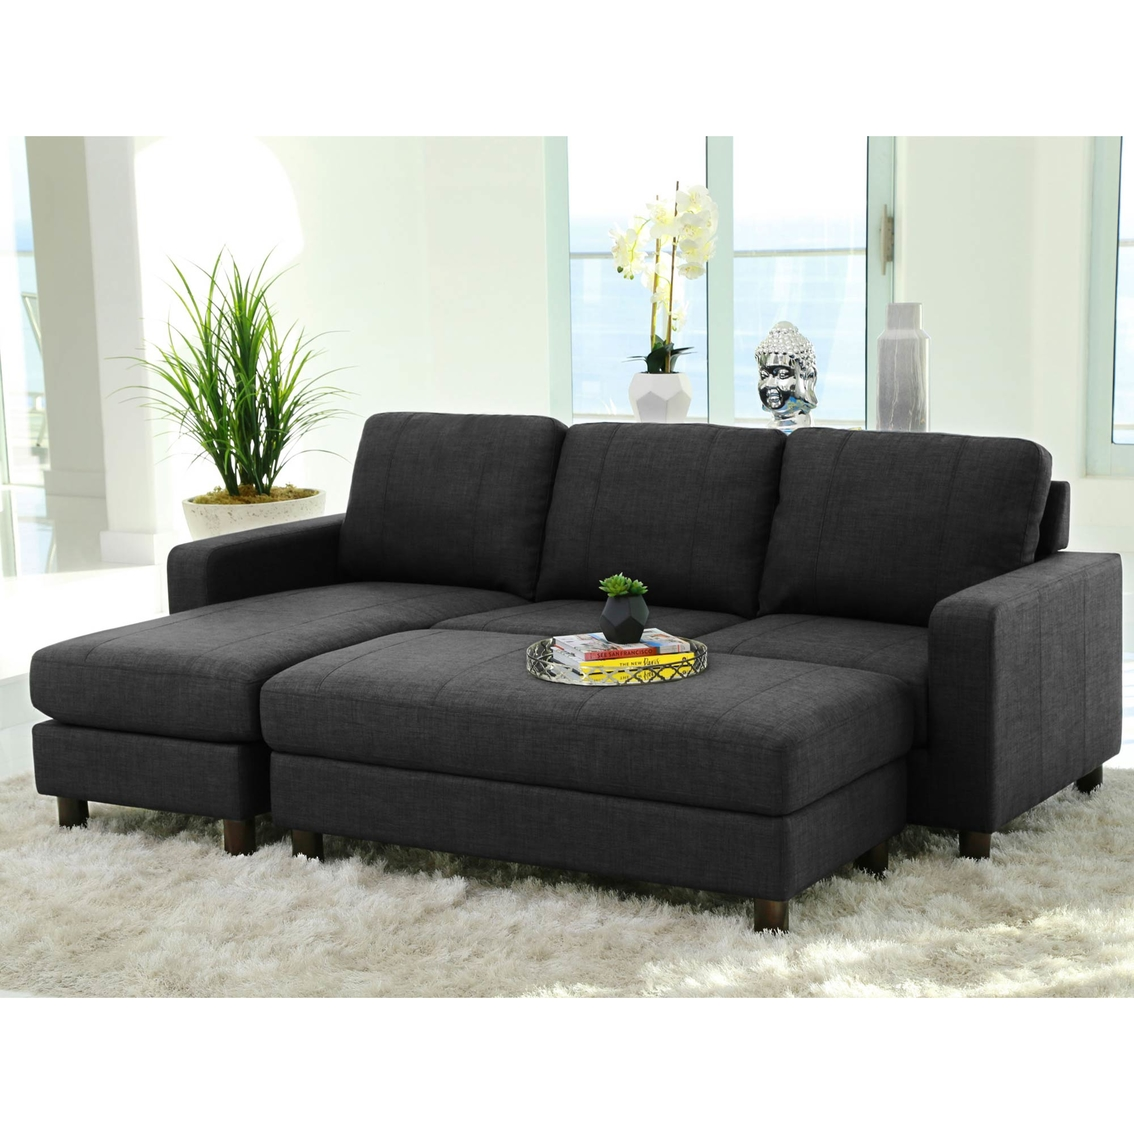 Astonishing Abbyson Living Berkeley Fabric Reversible Sectional And Caraccident5 Cool Chair Designs And Ideas Caraccident5Info